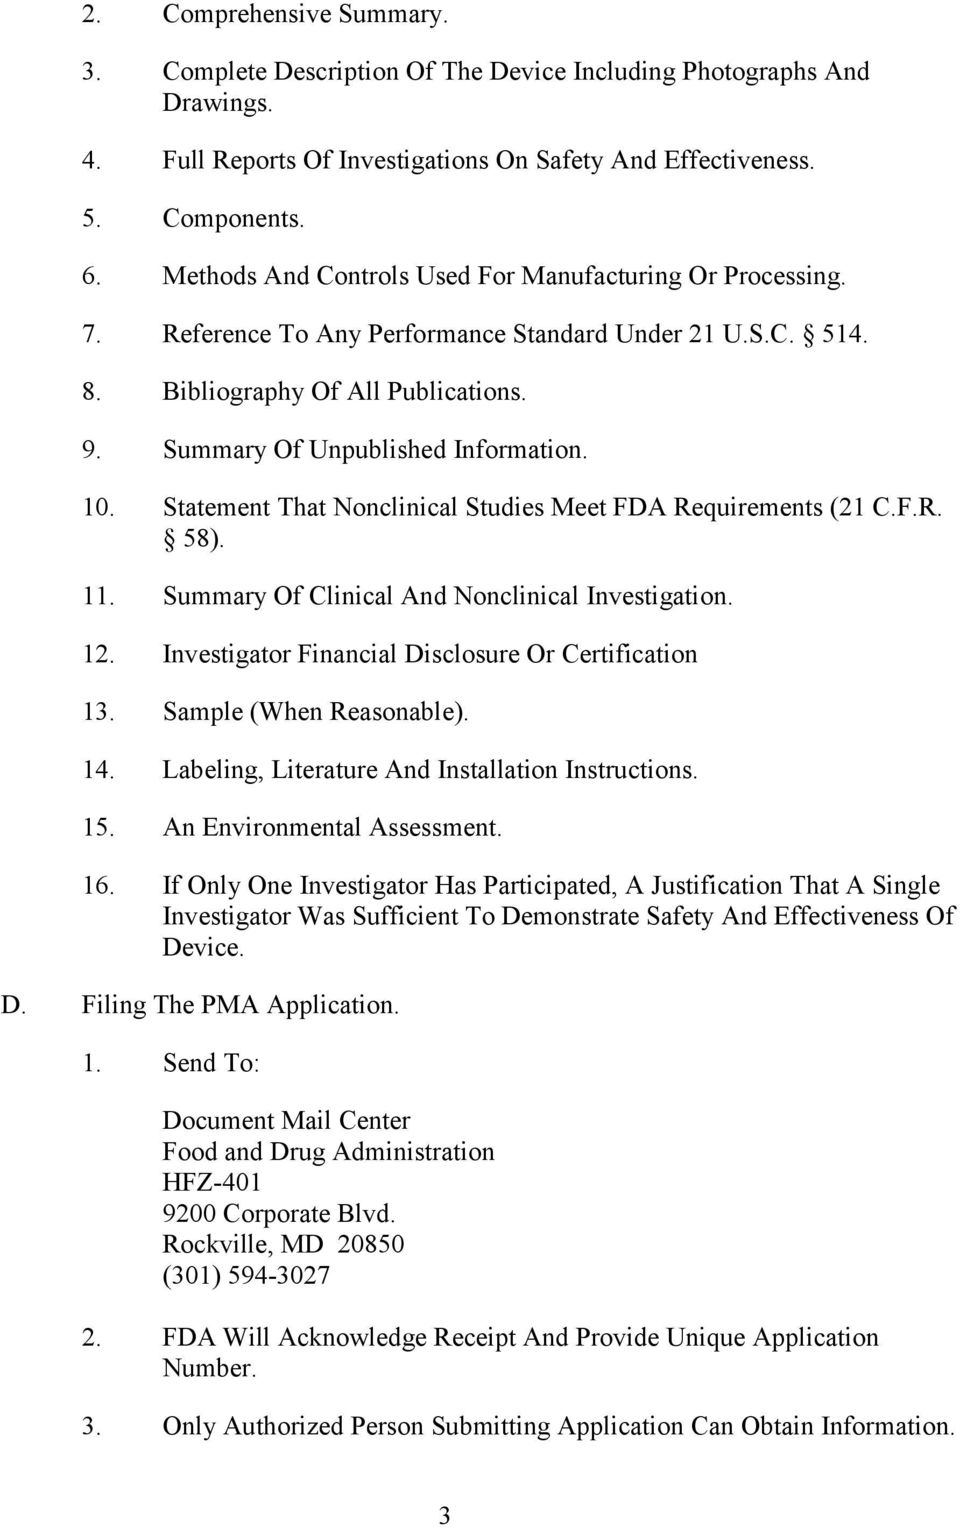 Statement That Nonclinical Studies Meet FDA Requirements (21 C.F.R. 58). 11. Summary Of Clinical And Nonclinical Investigation. 12. Investigator Financial Disclosure Or Certification 13.